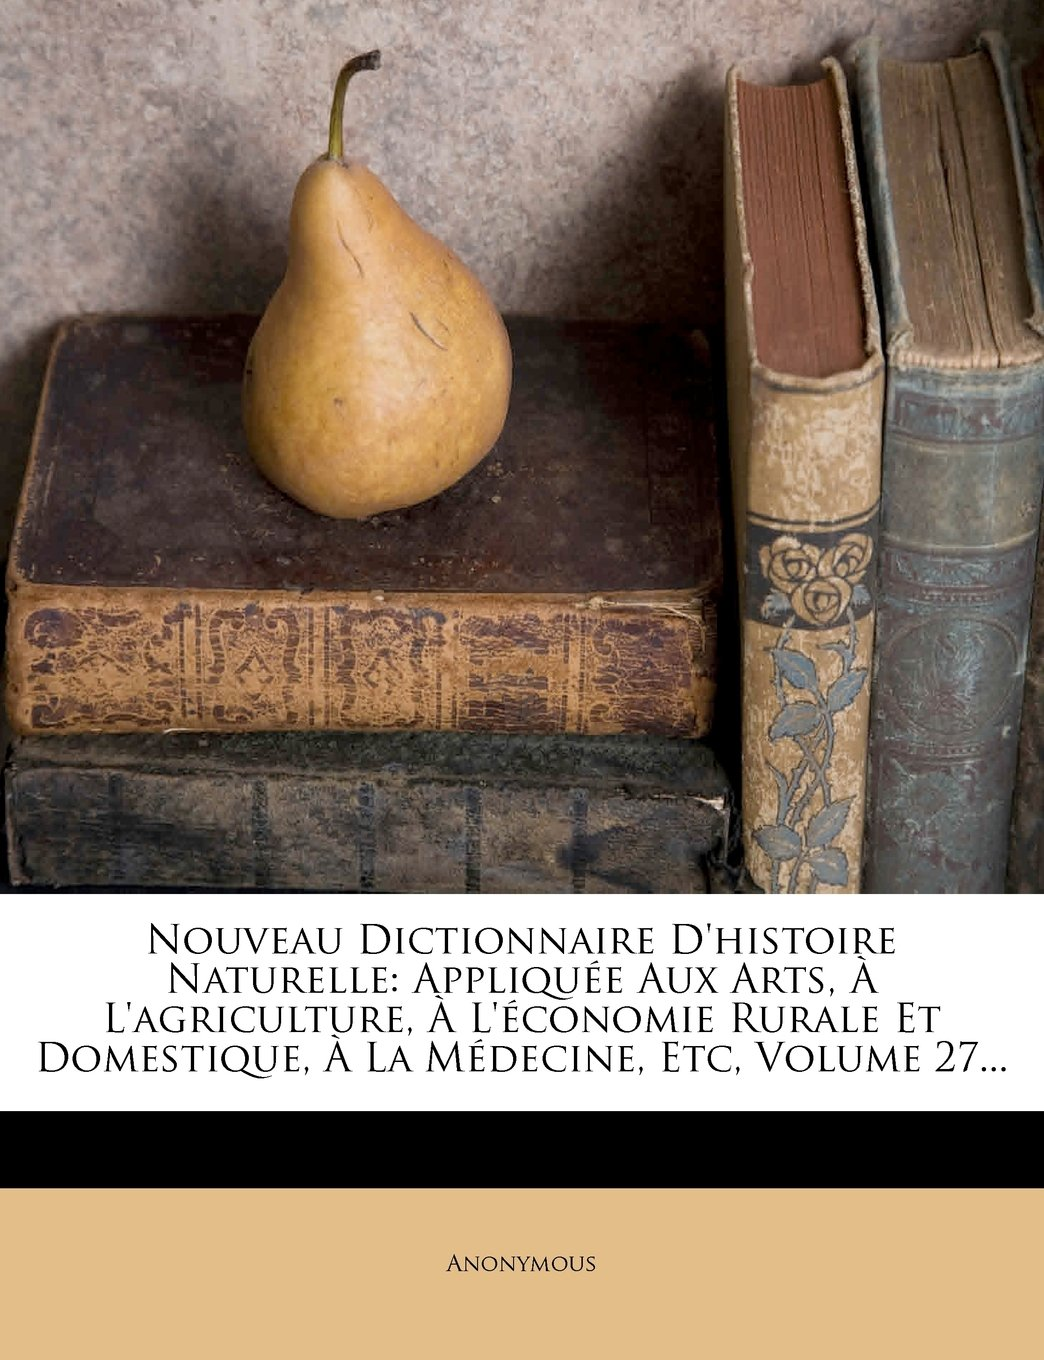 Download Nouveau Dictionnaire D'Histoire Naturelle: Appliquee Aux Arts, A L'Agriculture, A L'Economie Rurale Et Domestique, a la Medecine, Etc, Volume 27... (French Edition) ebook